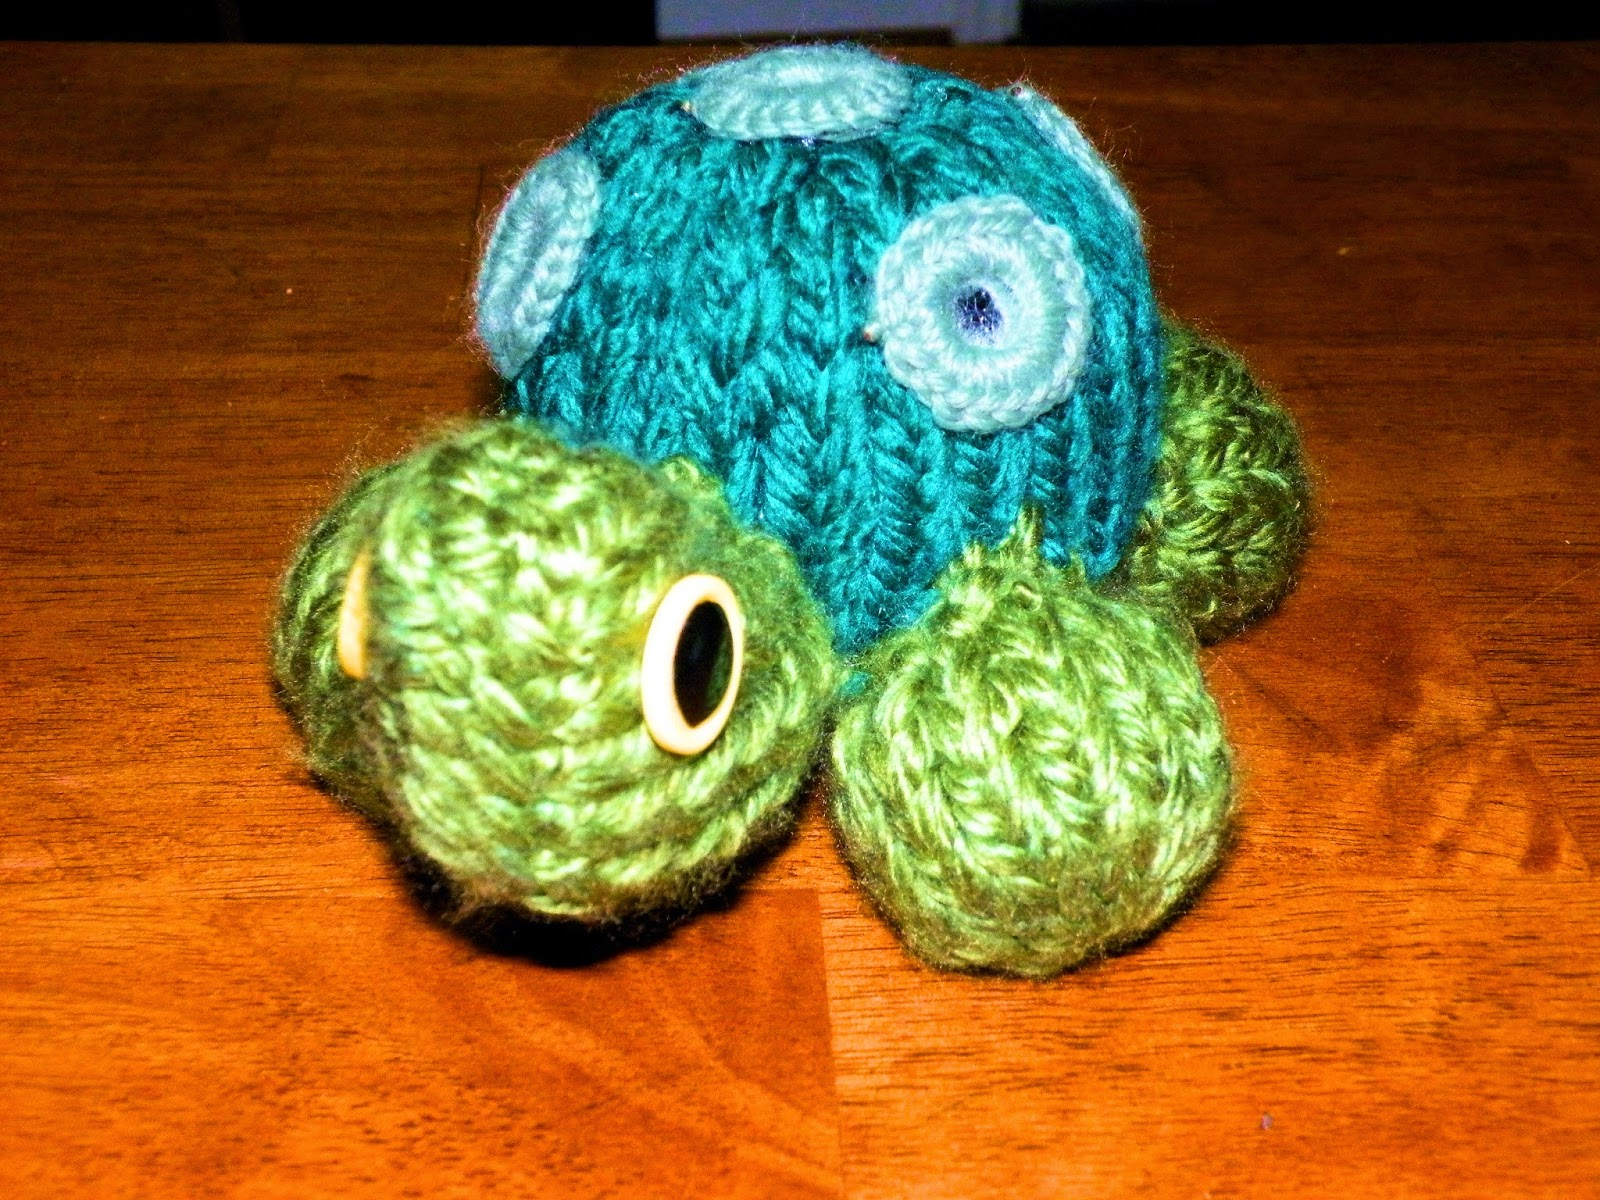 Knit Animal Patterns : The Loom Muse : How to Loom Knit a Turtle and Ladybug